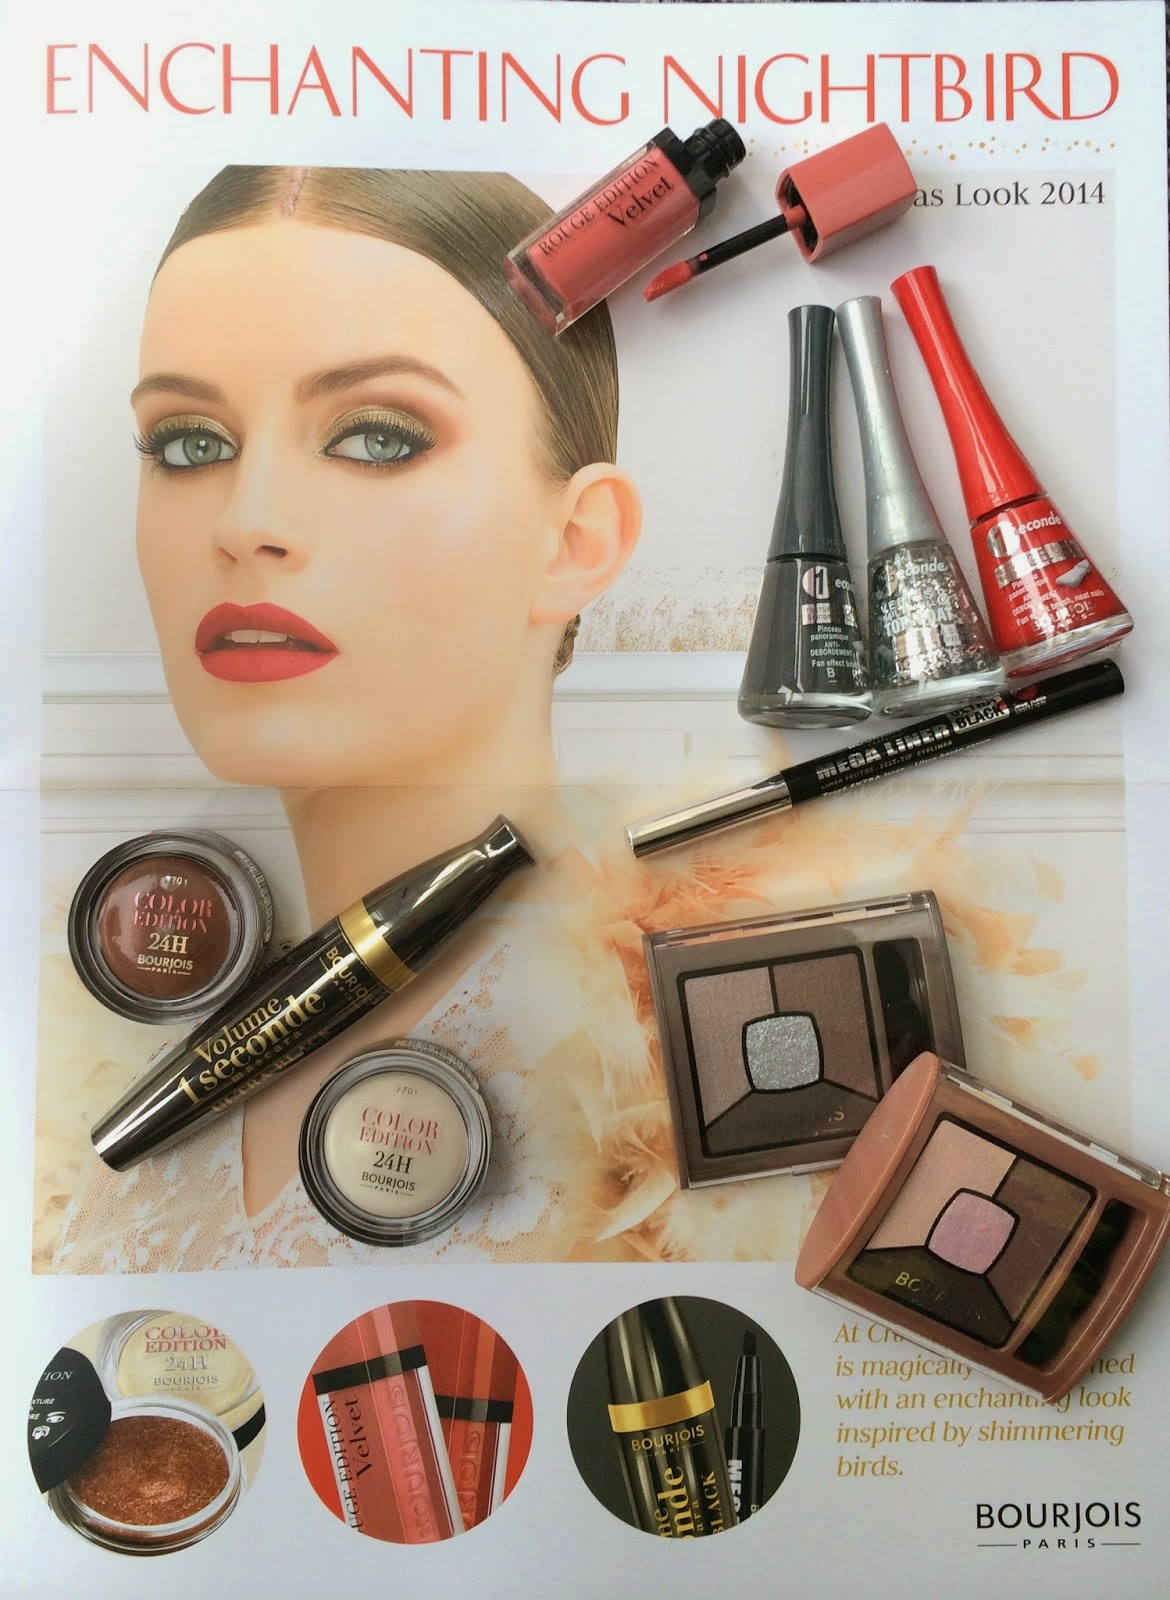 bourjois-24-hour-party-ready-event-christmas-2014